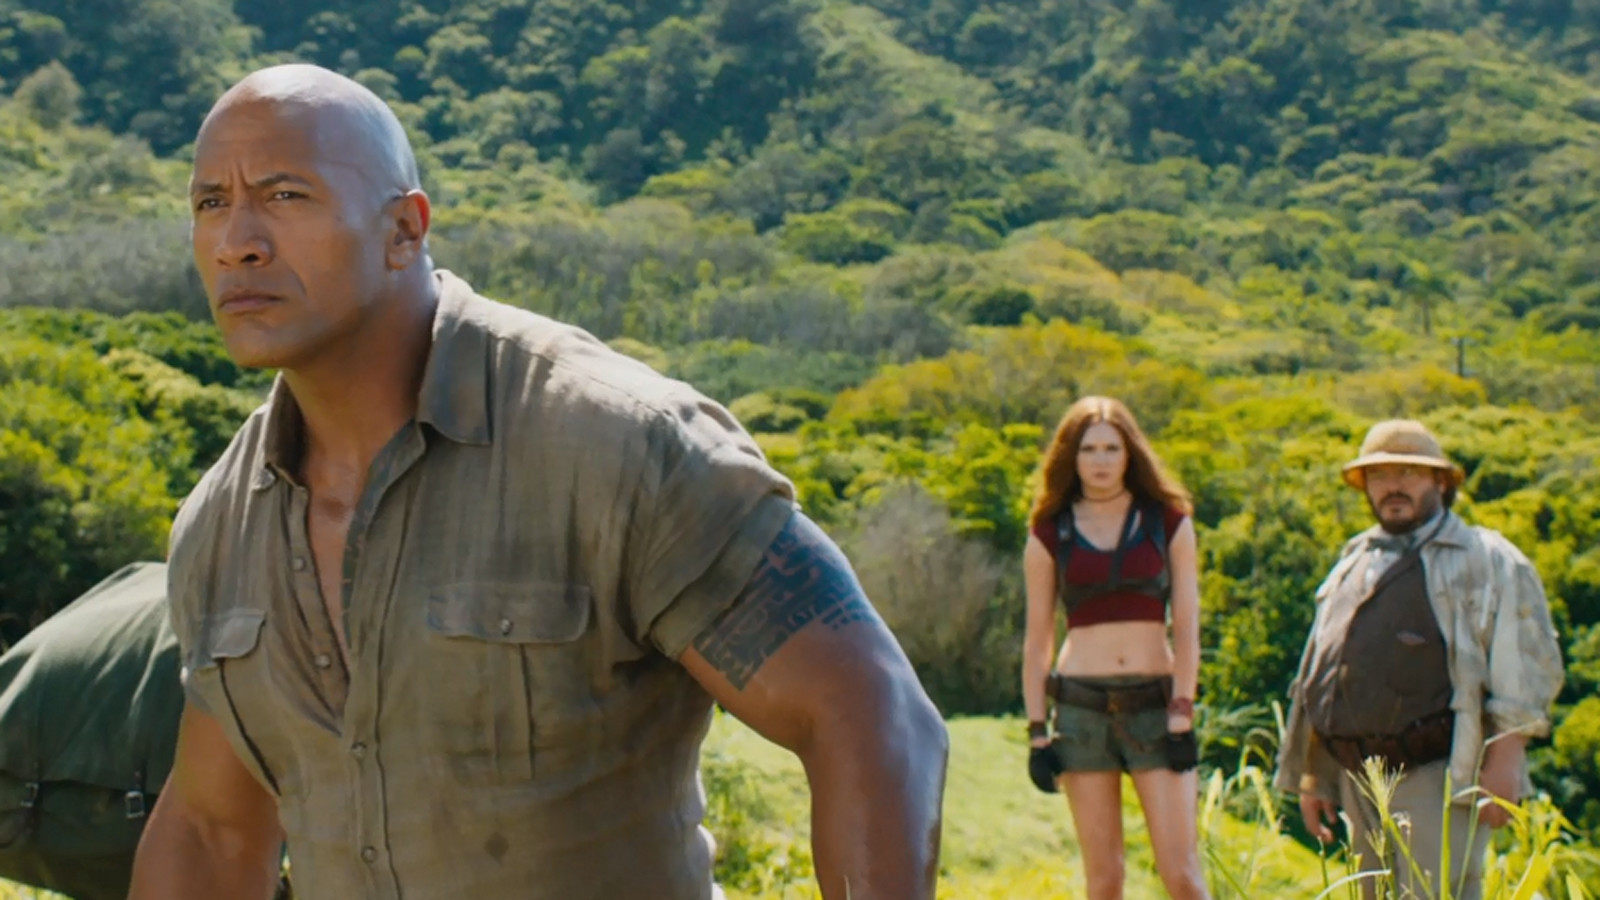 'Jumanji' trailer turns Dwayne Johnson, Kevin Hart into video game avatars